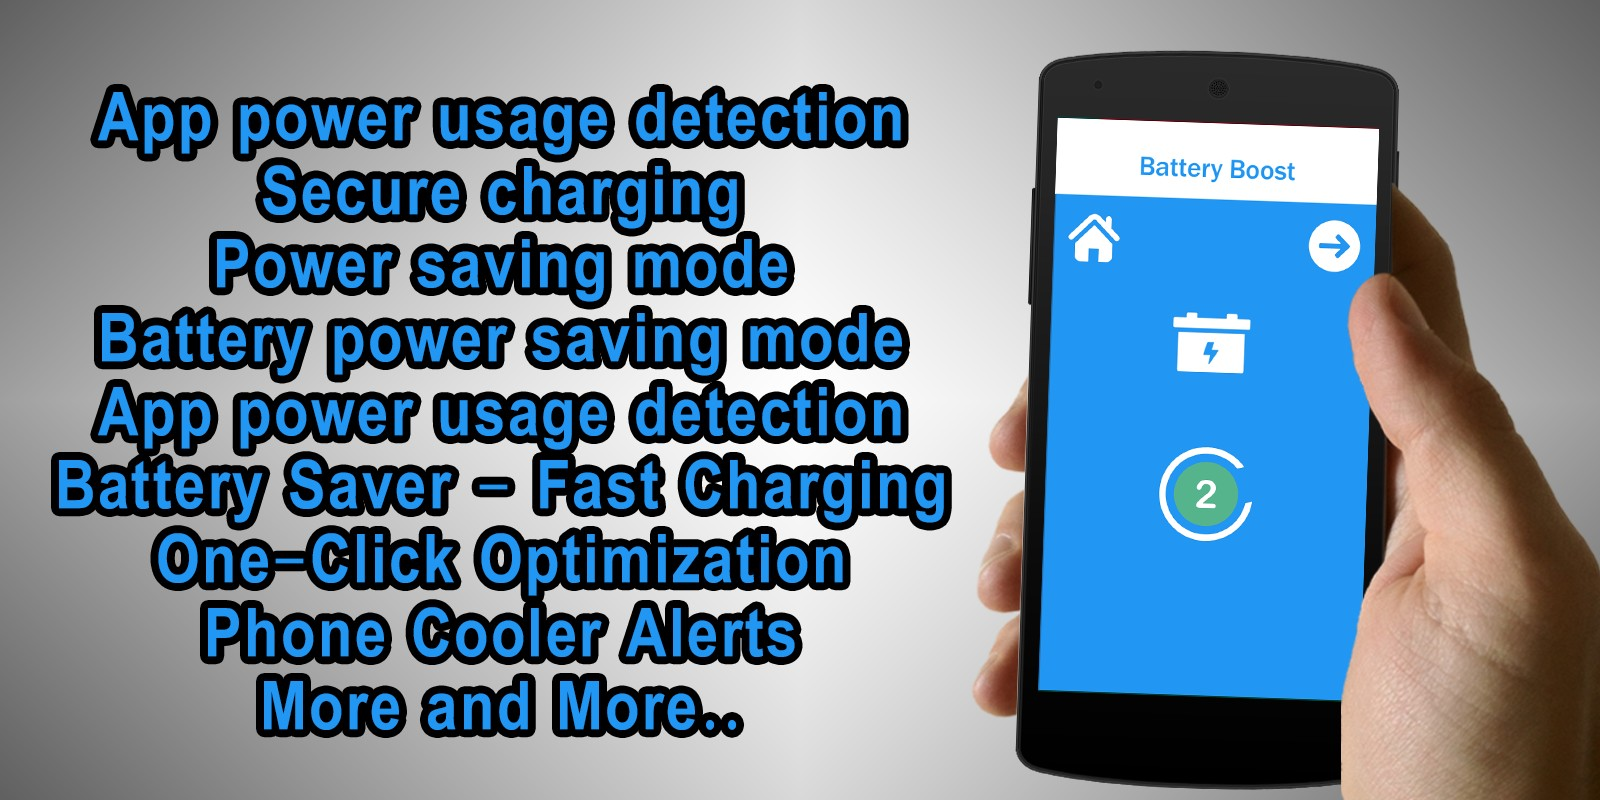 Battery Saver - Android Source Code